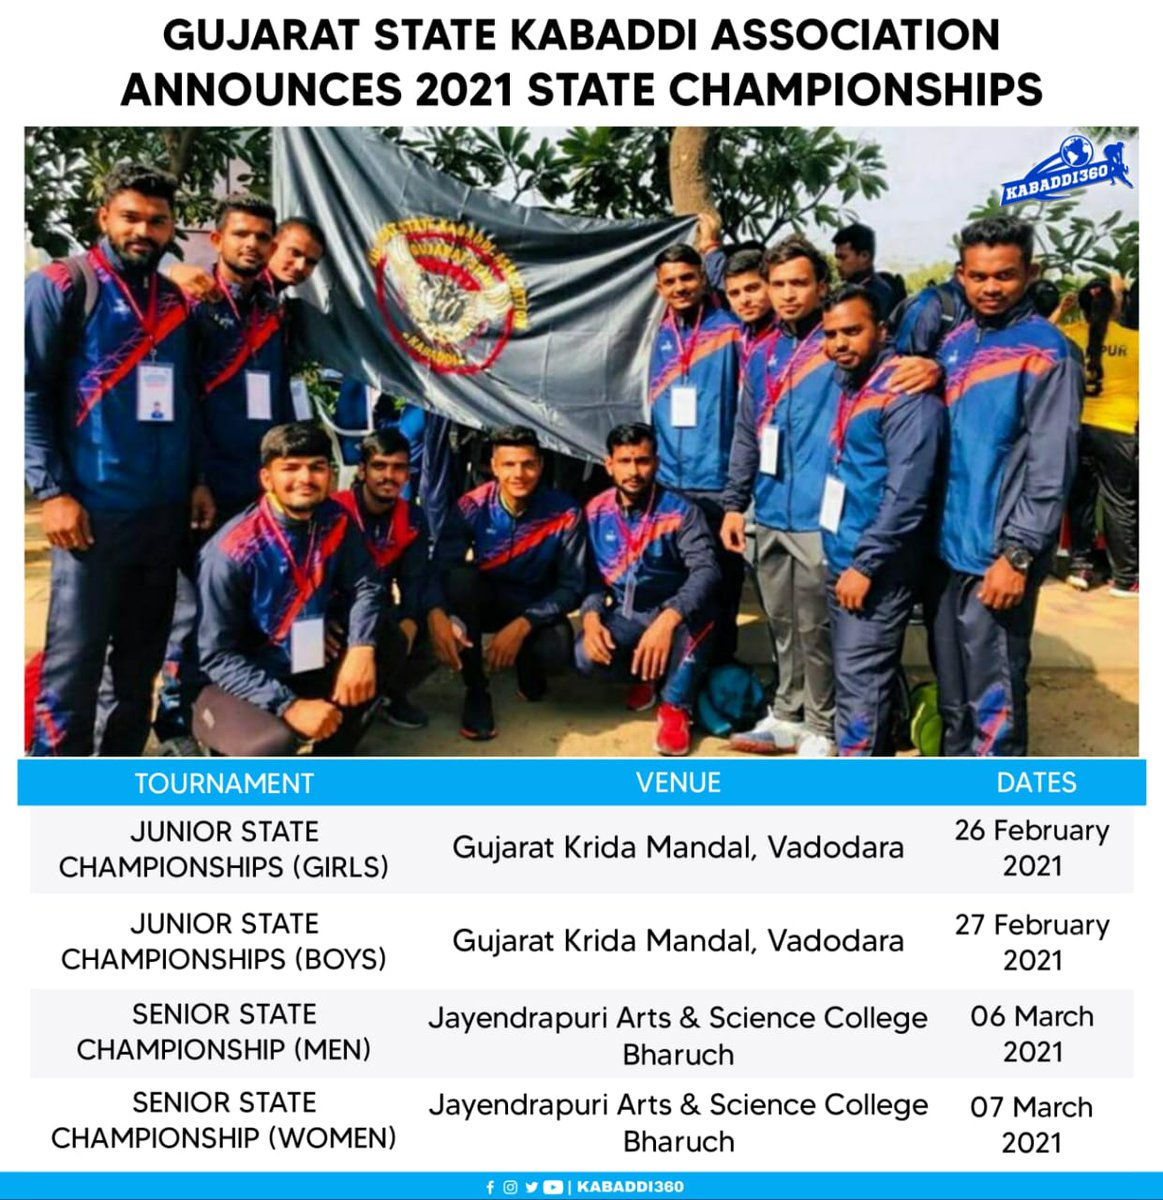 Here are the dates and venues for state championships to be held for Gujarat this year 💥  #GujaratKabaddi #StateChampionships #Kabaddi360